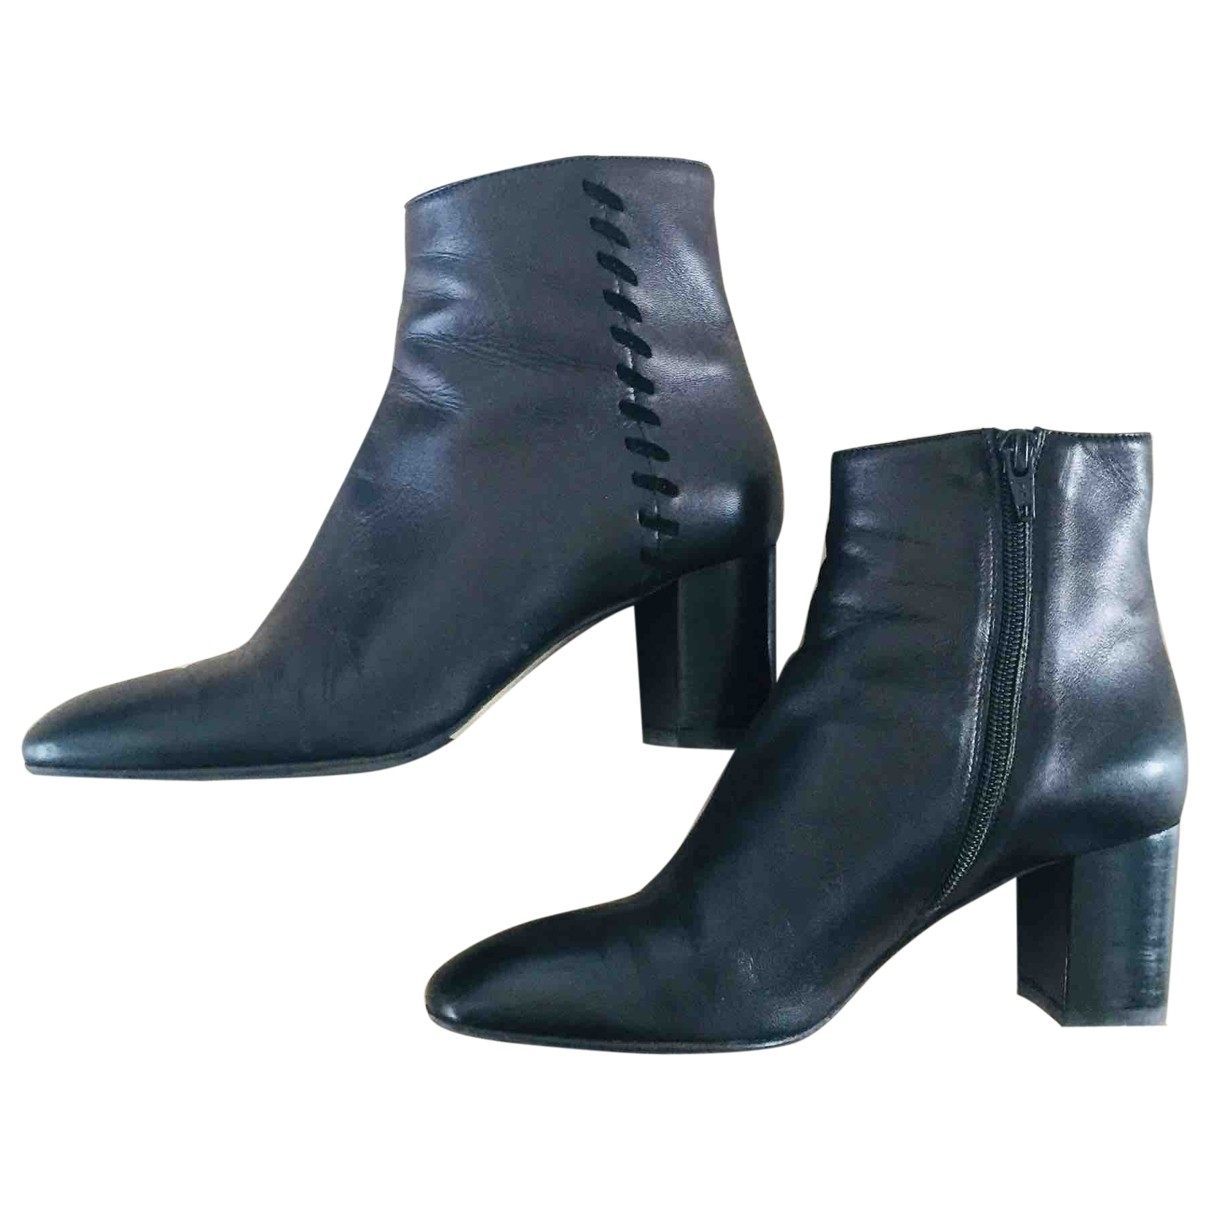 Hobbs \N Brown Leather Boots for Women 5 UK